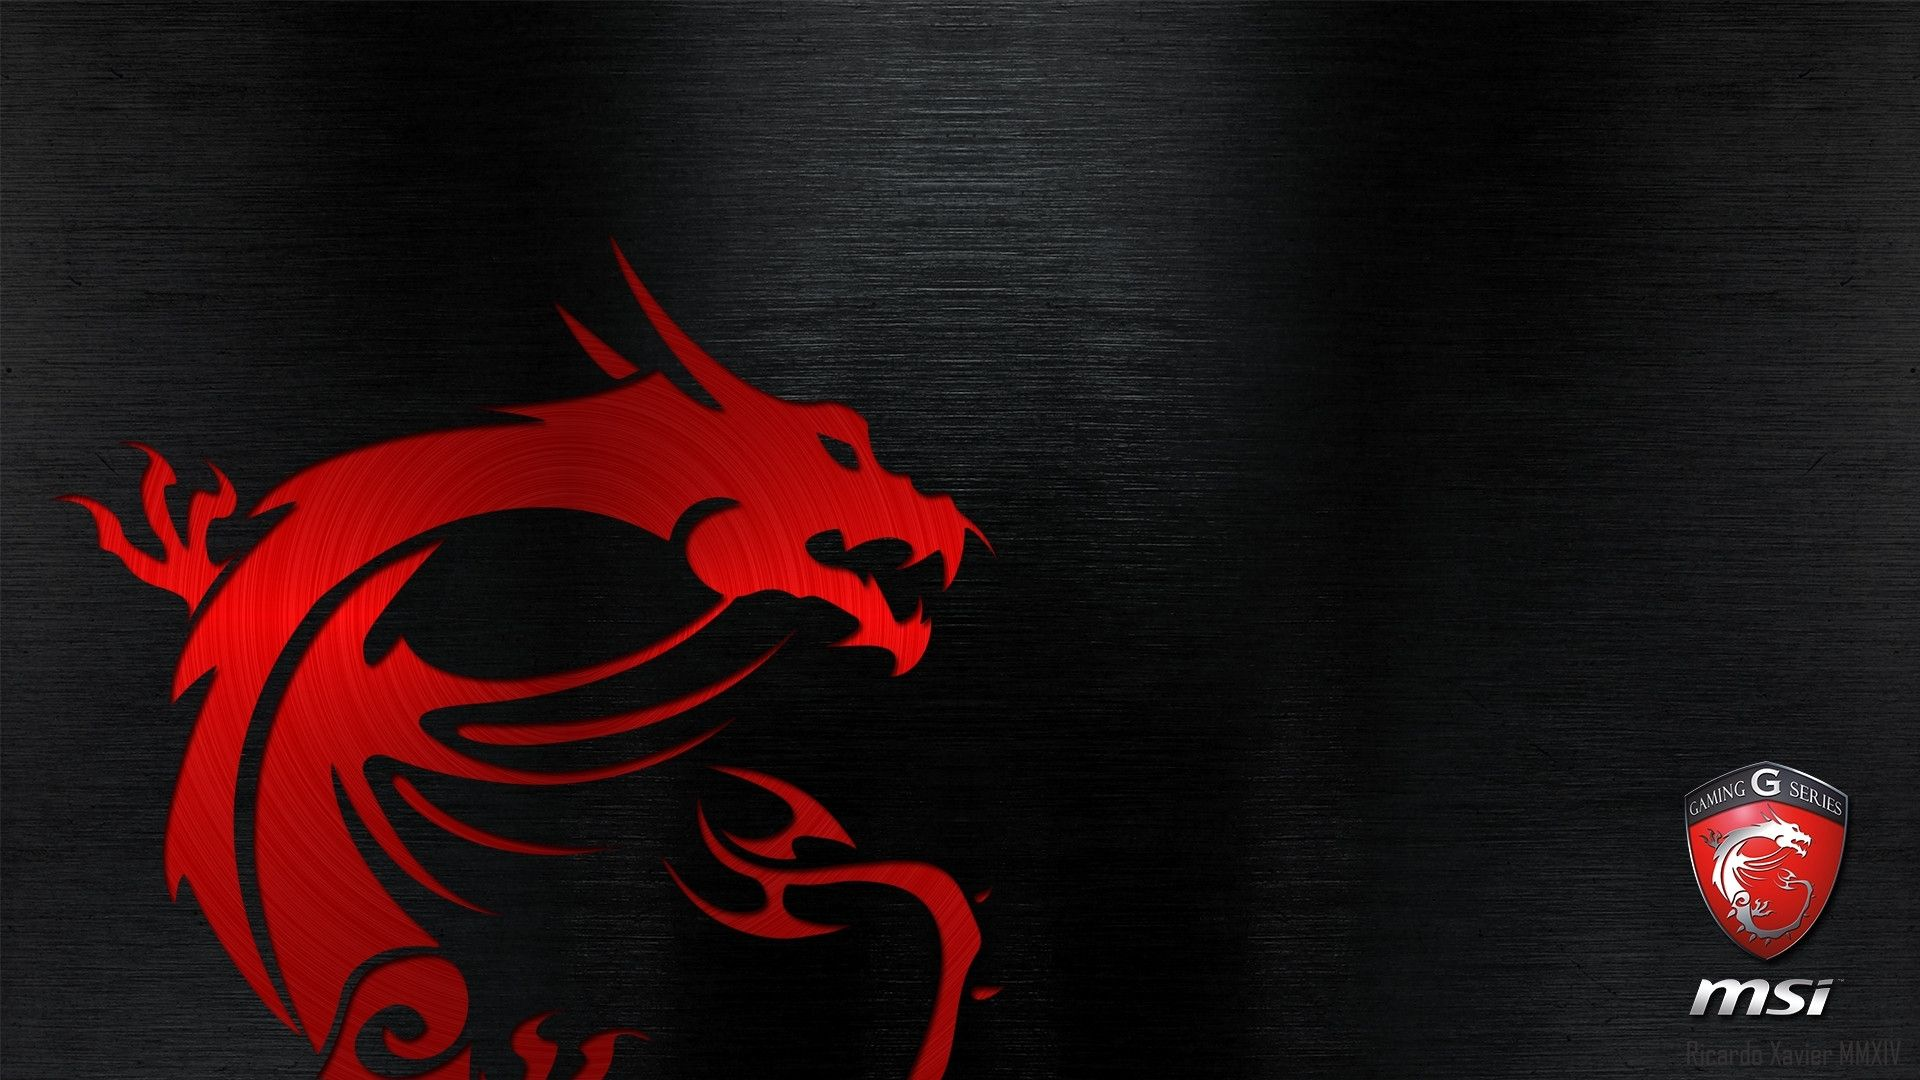 10 Most Popular Cool Gaming Wallpapers Hd 1920x1080 Full: 10 Most Popular Msi Dragon Wallpaper Hd FULL HD 1080p For